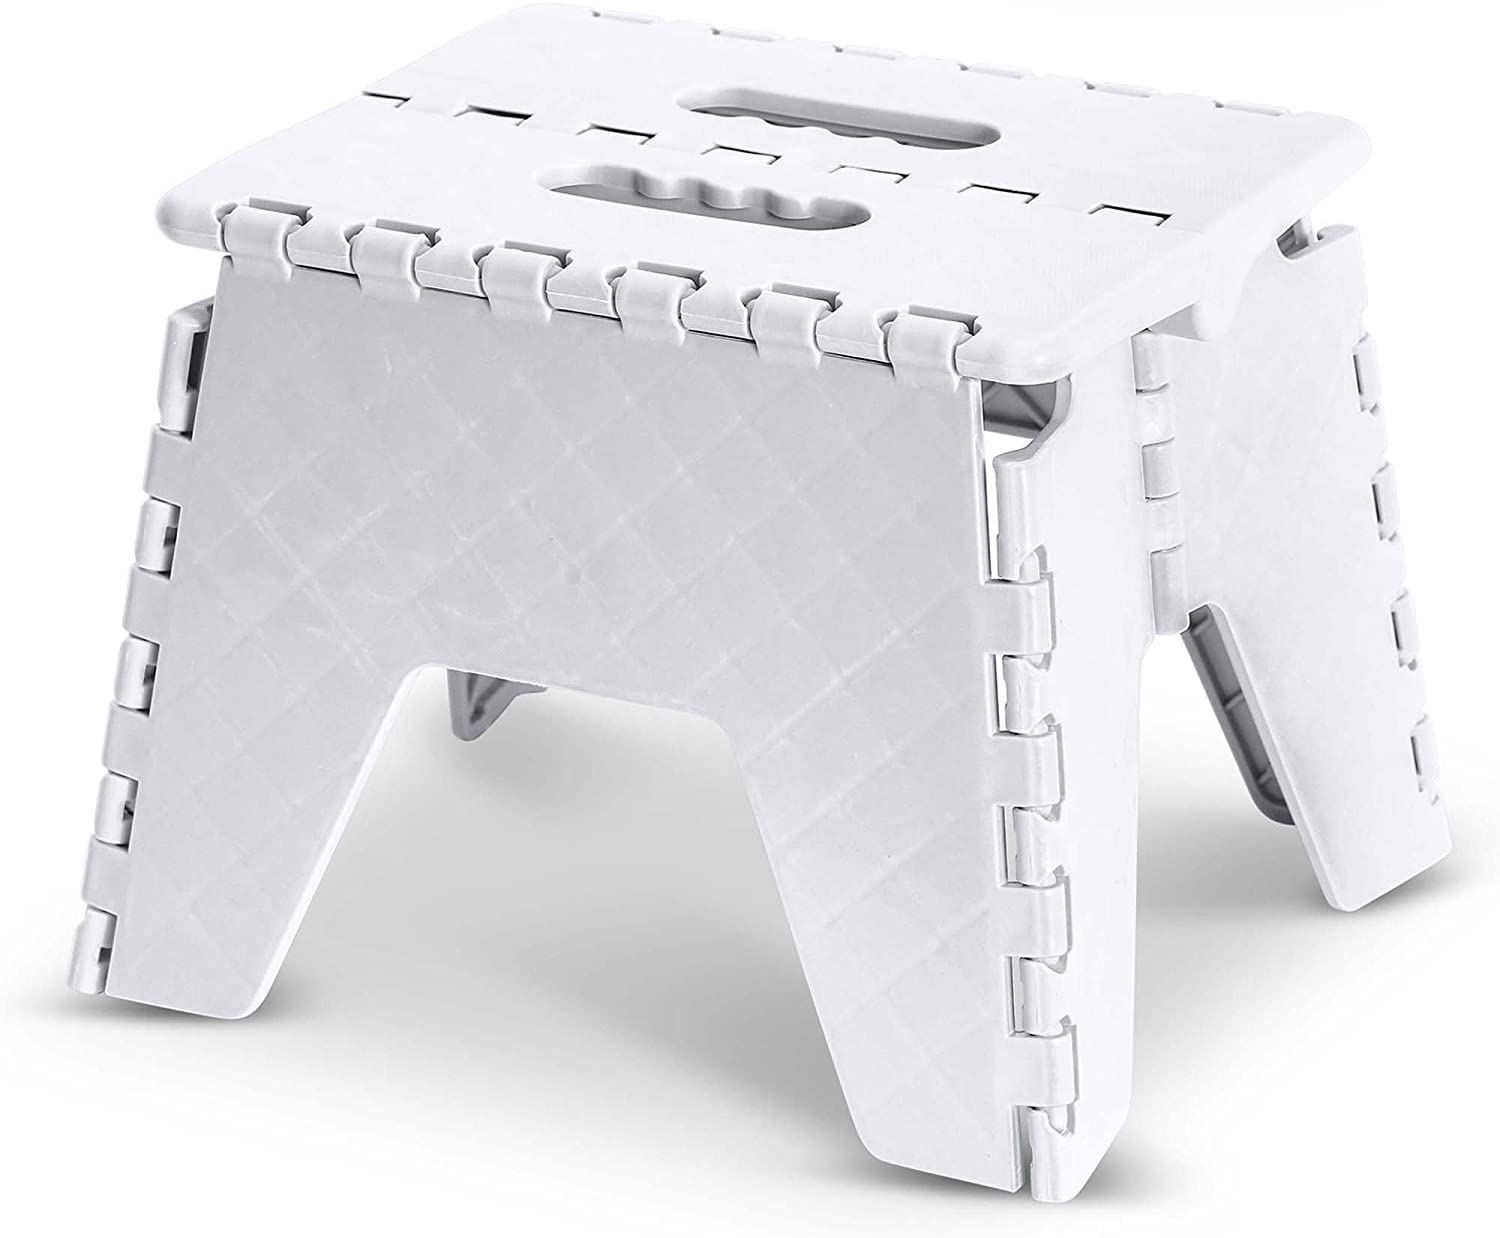 PLASTIC FOLDING STEP STOOL COMPACT STORABLE TRAVEL CARRY HANDLE STEPPING REACH